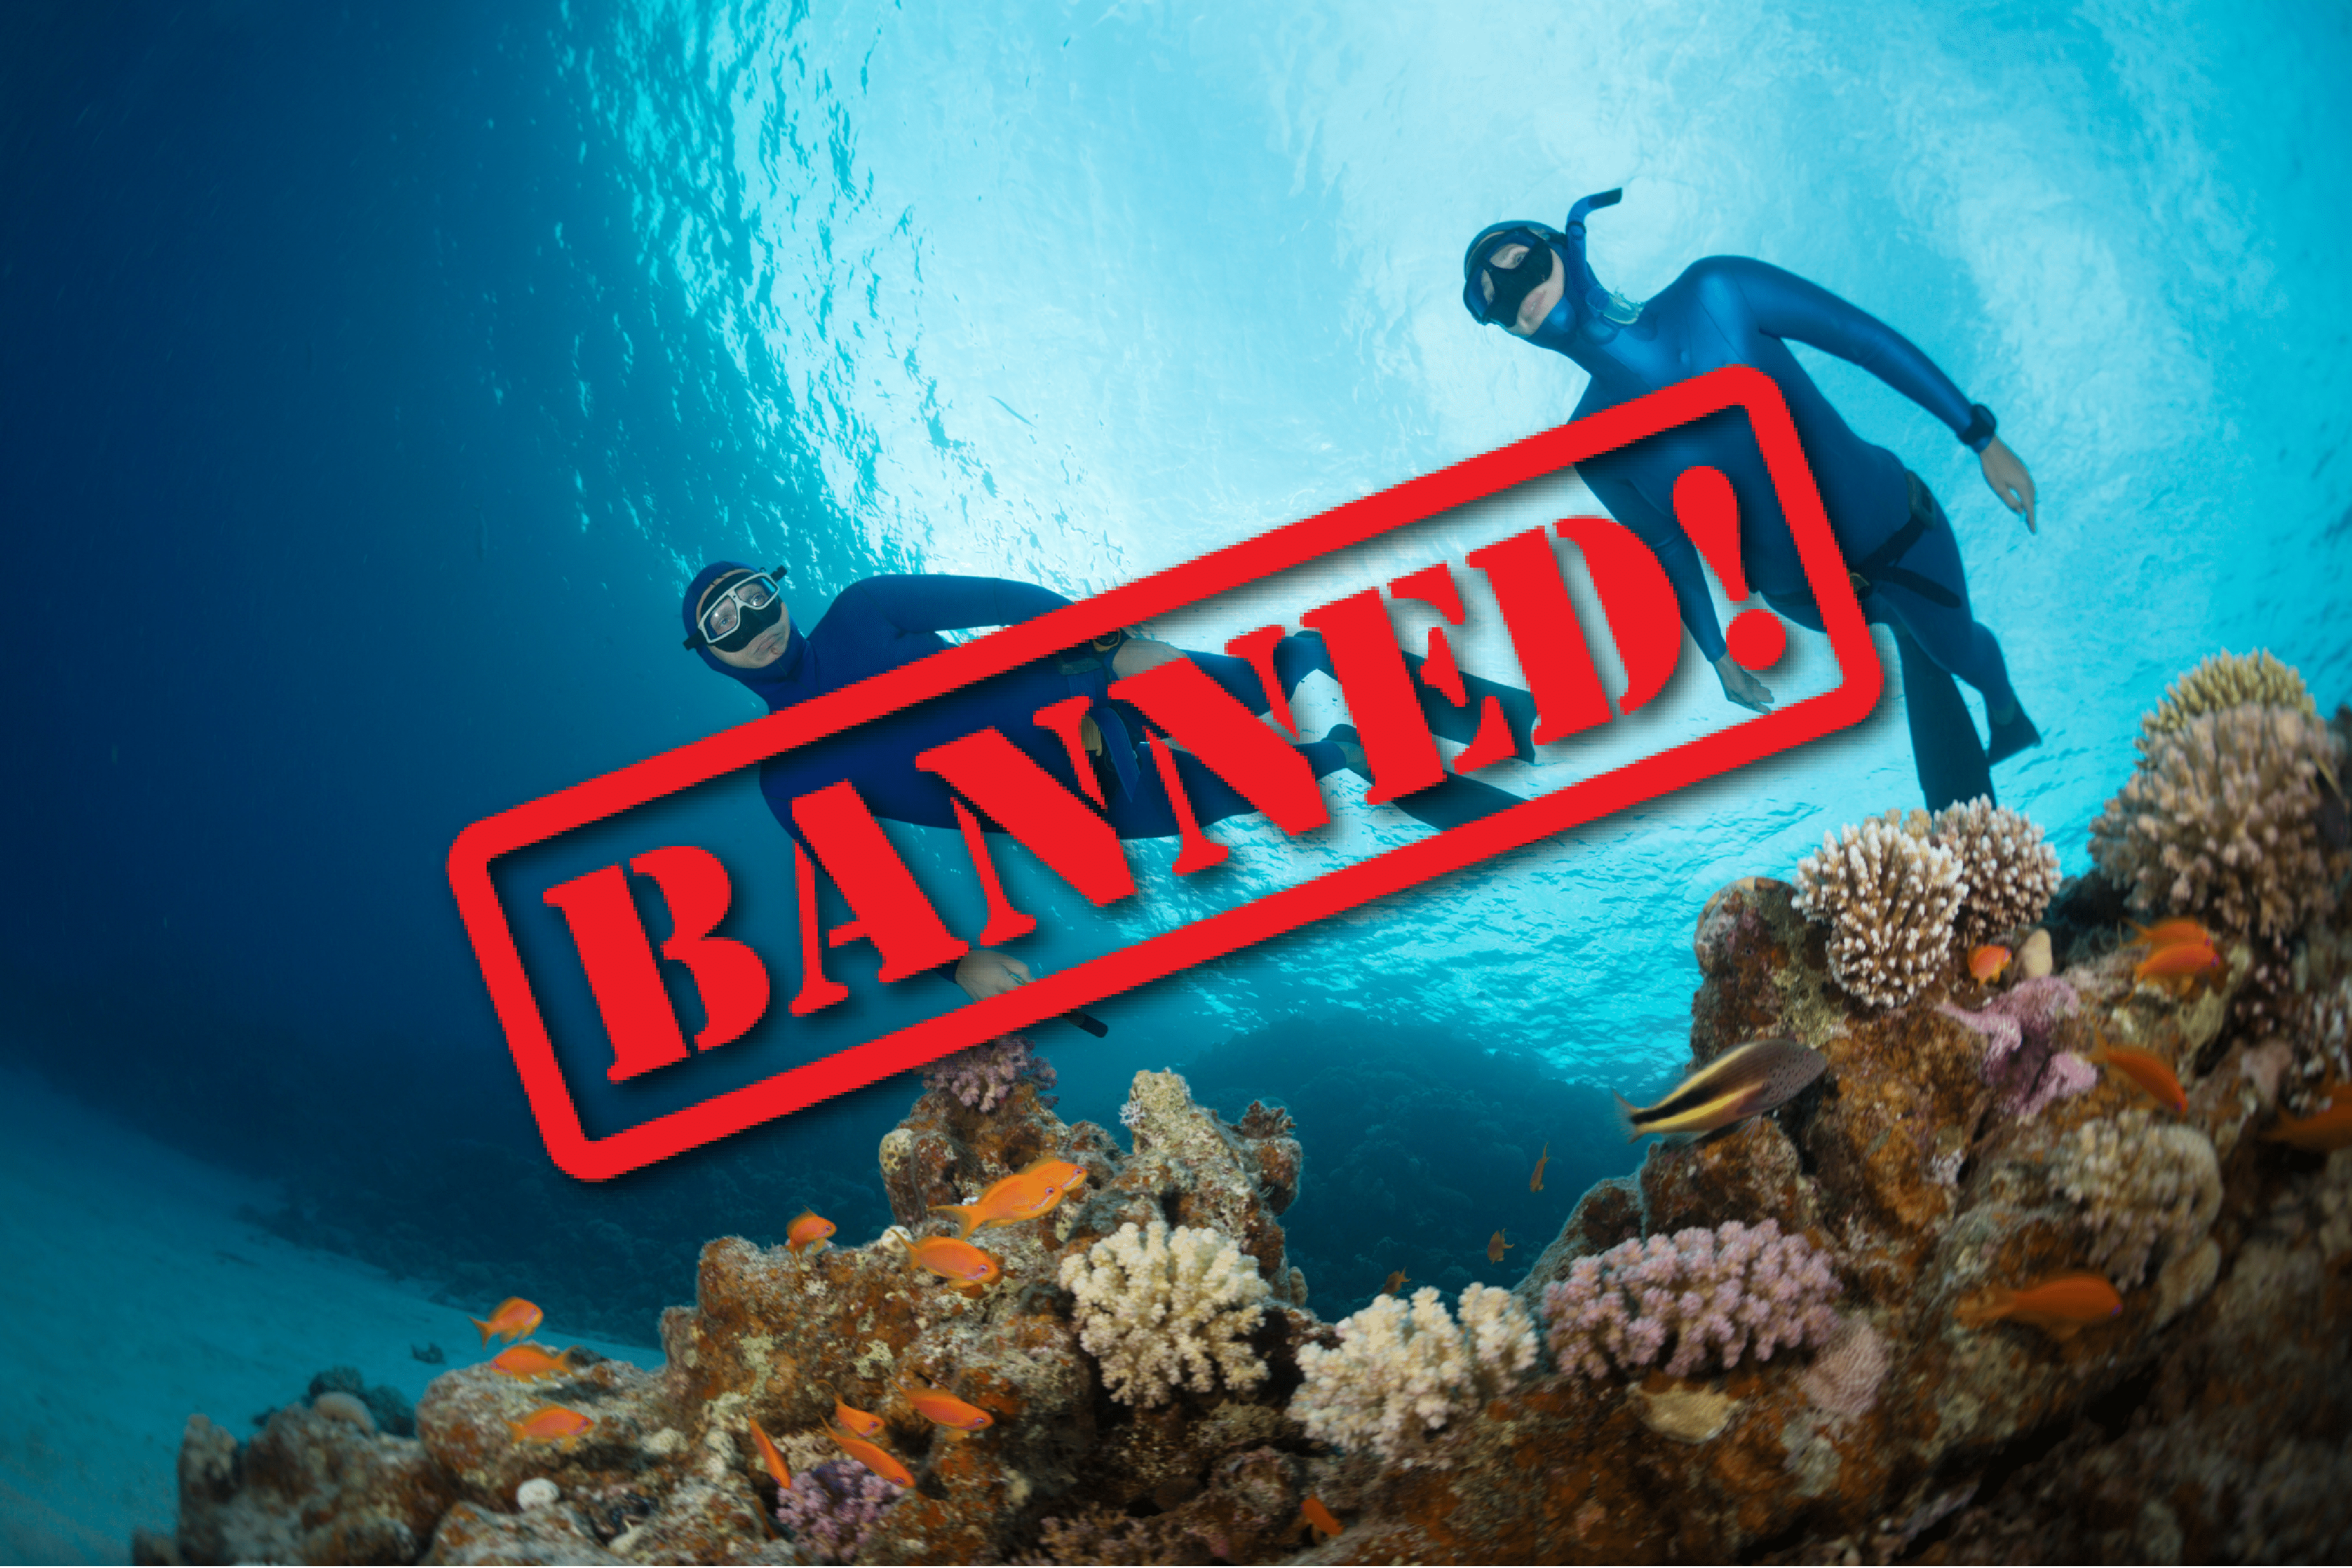 Freediving Banned April 1